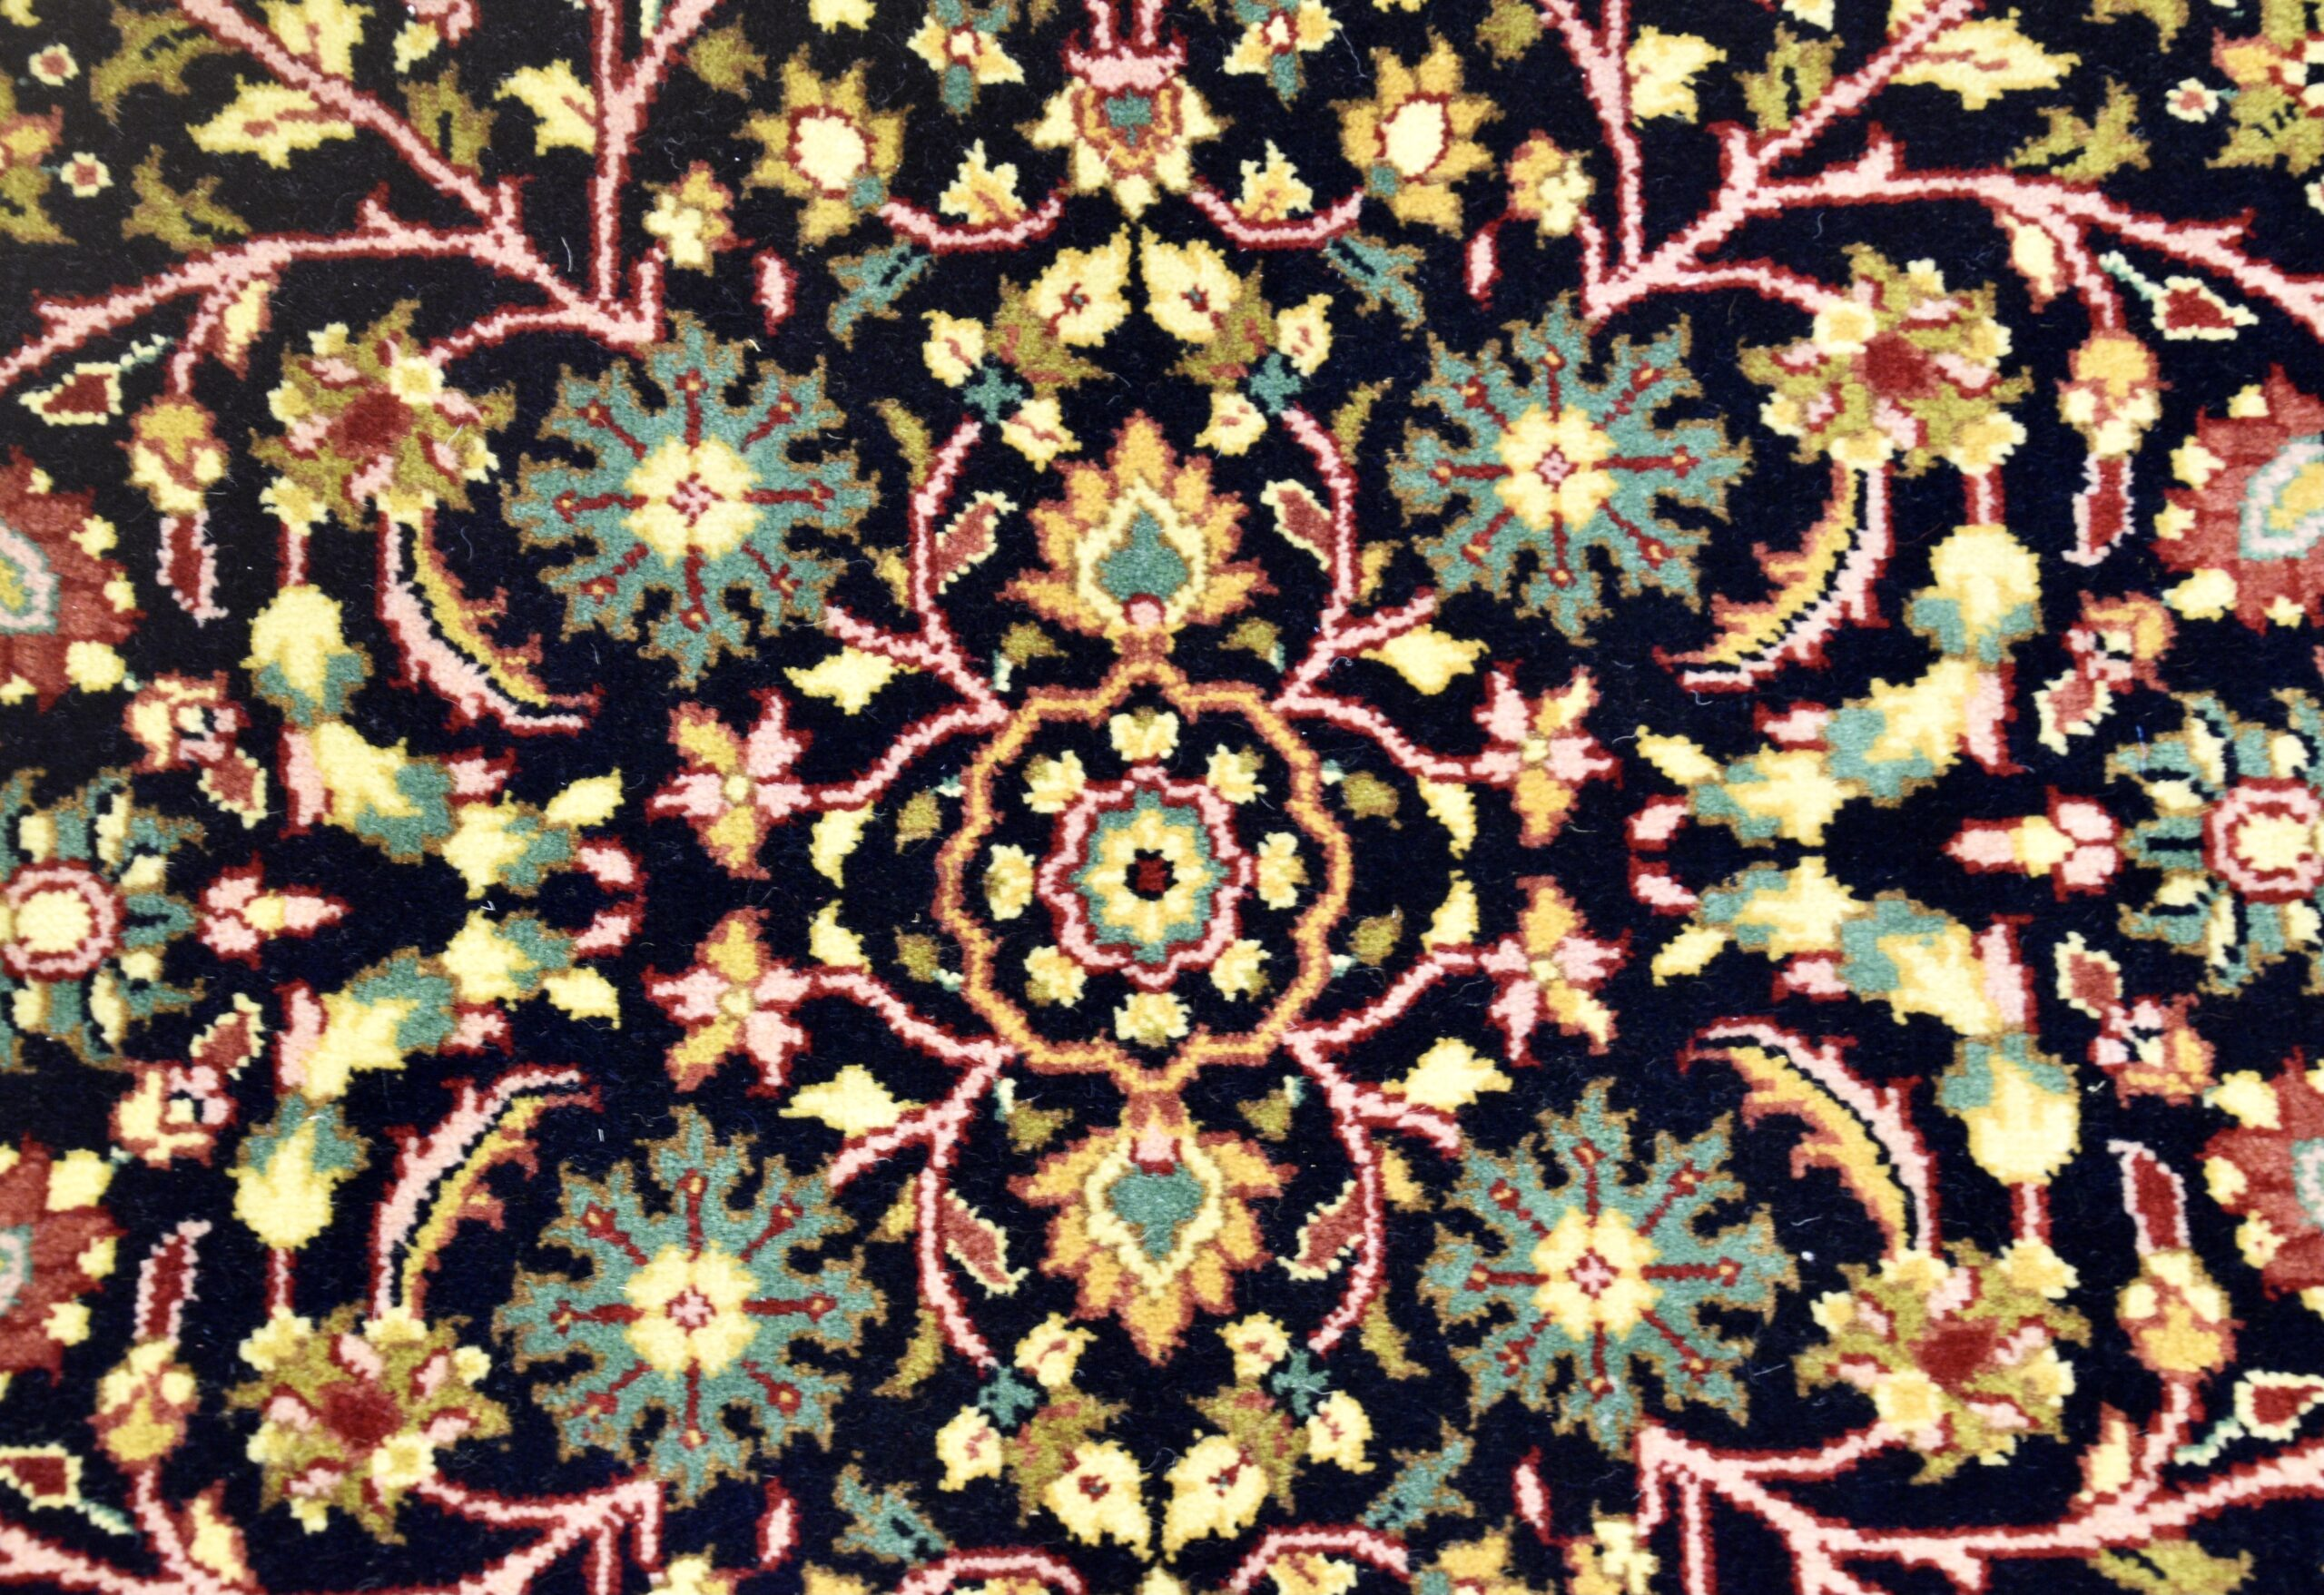 Up close of a Turkish rug with floral patterns in teal, orange, pink,and yellow on a black background.